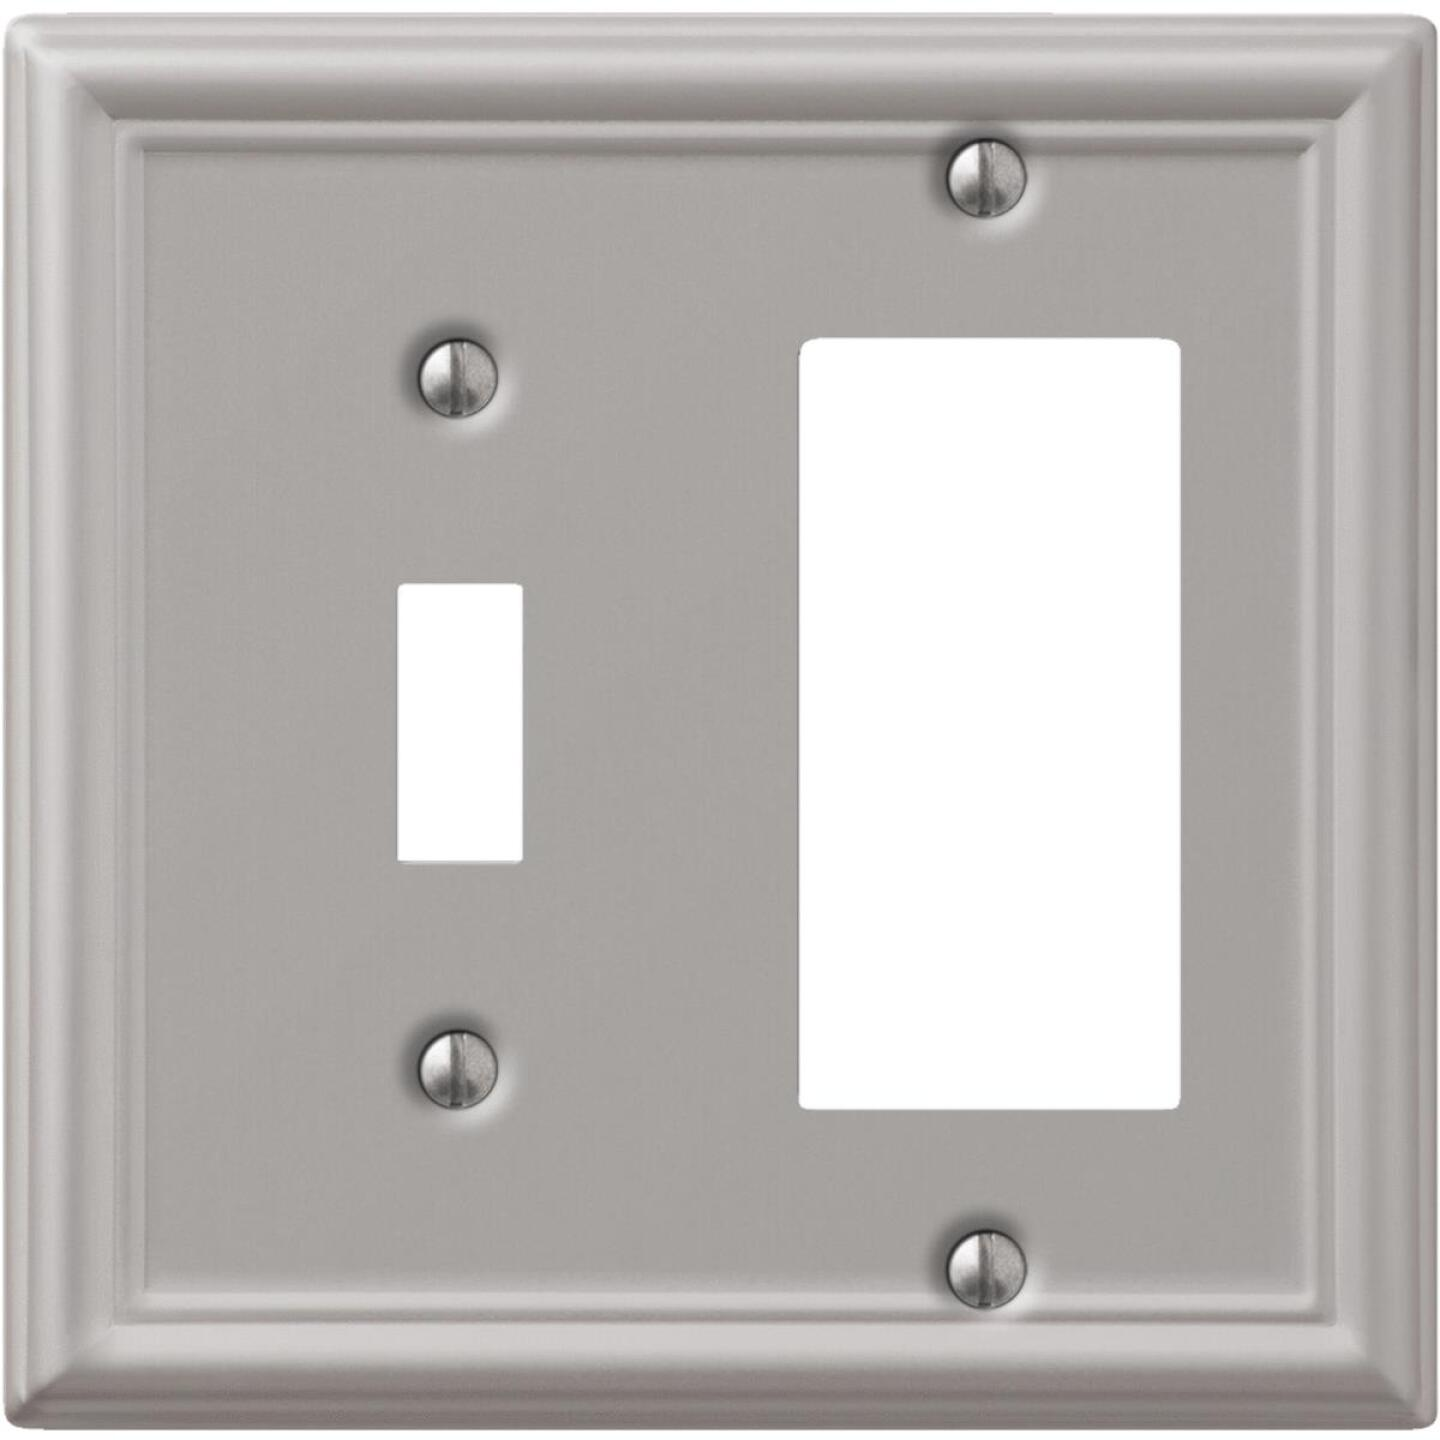 Amerelle Chelsea 2-Gang Stamped Steel Single Toggle/Rocker Wall Plate, Brushed Nickel Image 1